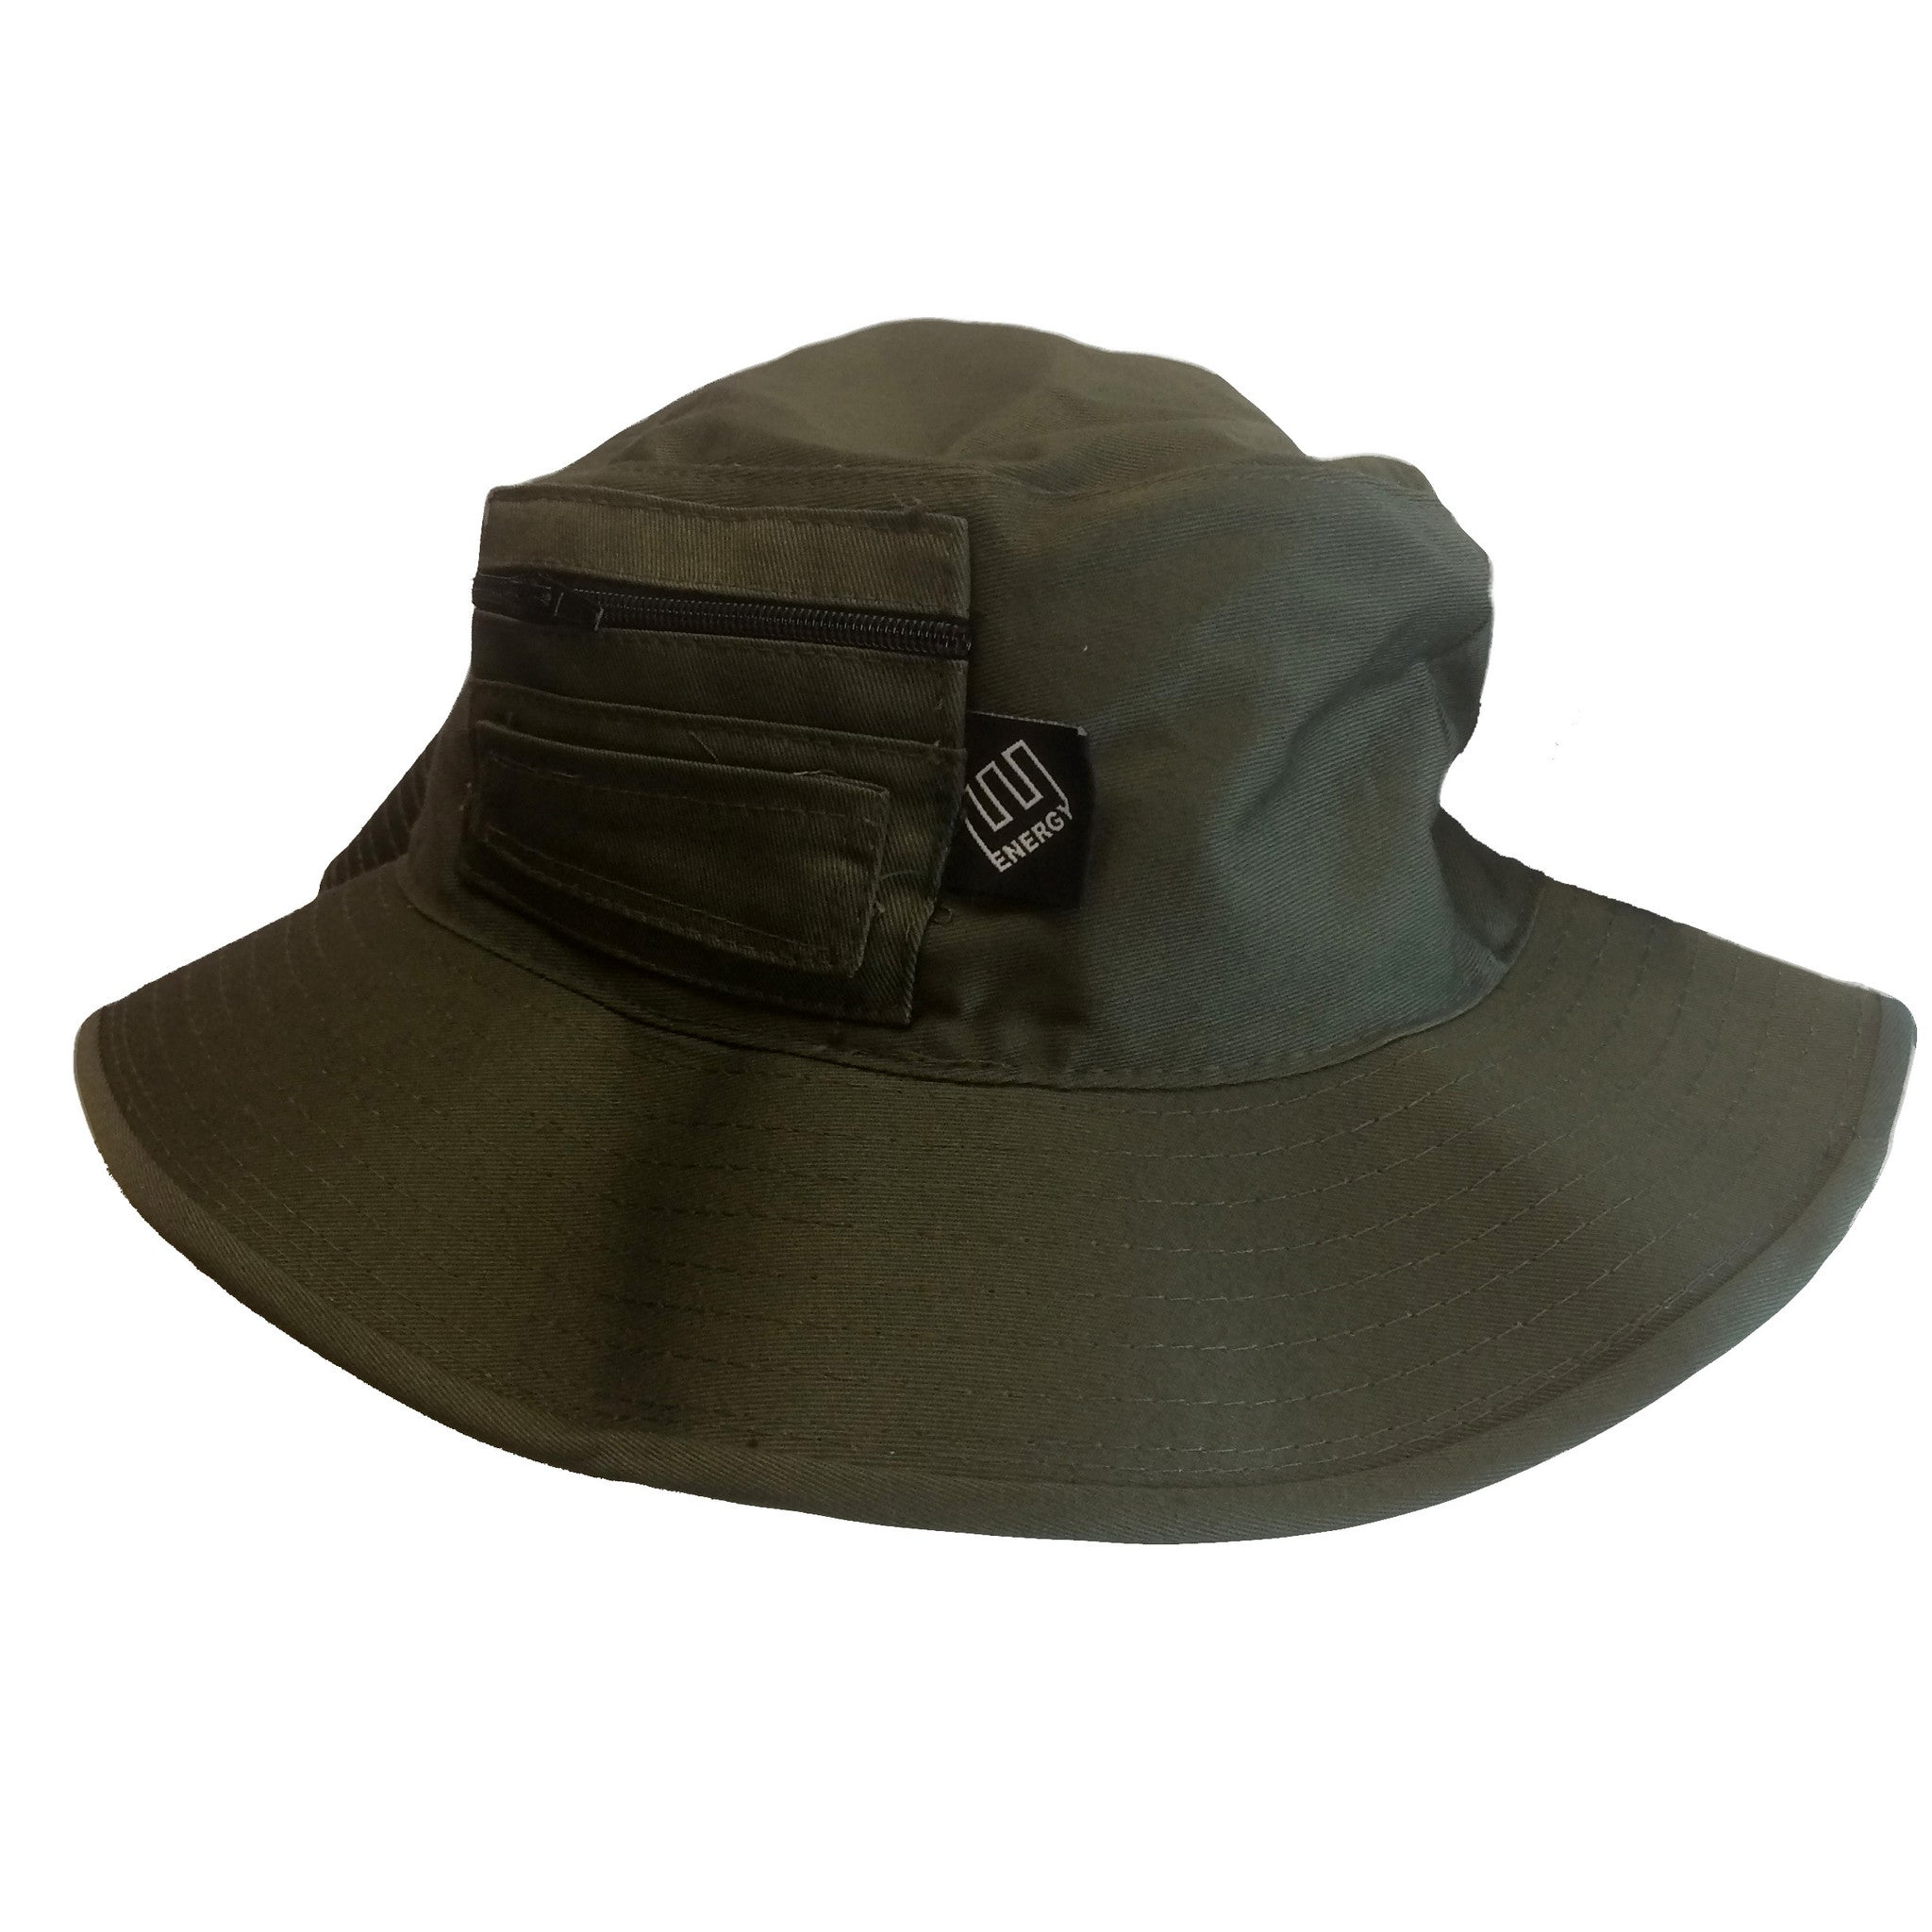 5a63d23b9e5 ENERGY Boonie Hat With Pocket (Olive Drab) – Energy Skate Shop